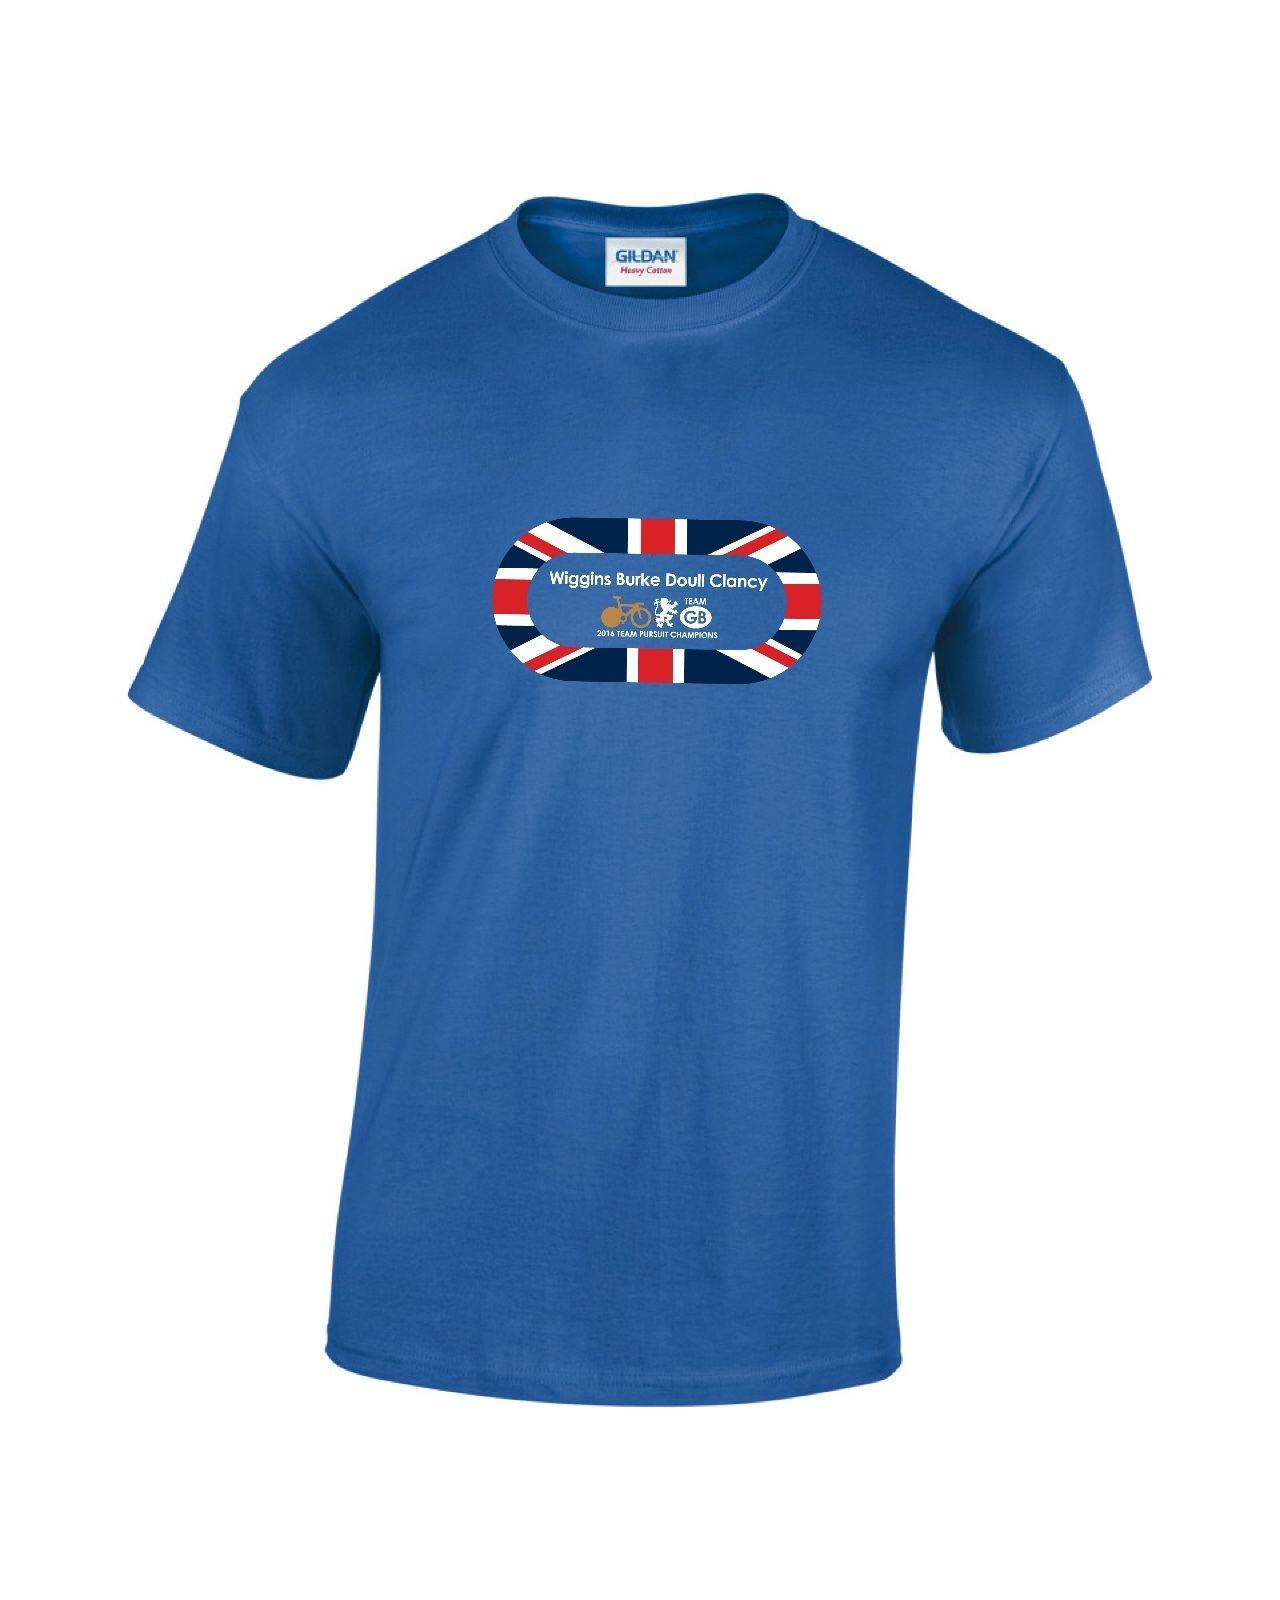 Details zu Team GB Pursuit Gold 2016 Track Cycling Mens Printed T-Shirt Funny free shipping Unisex Casual gift